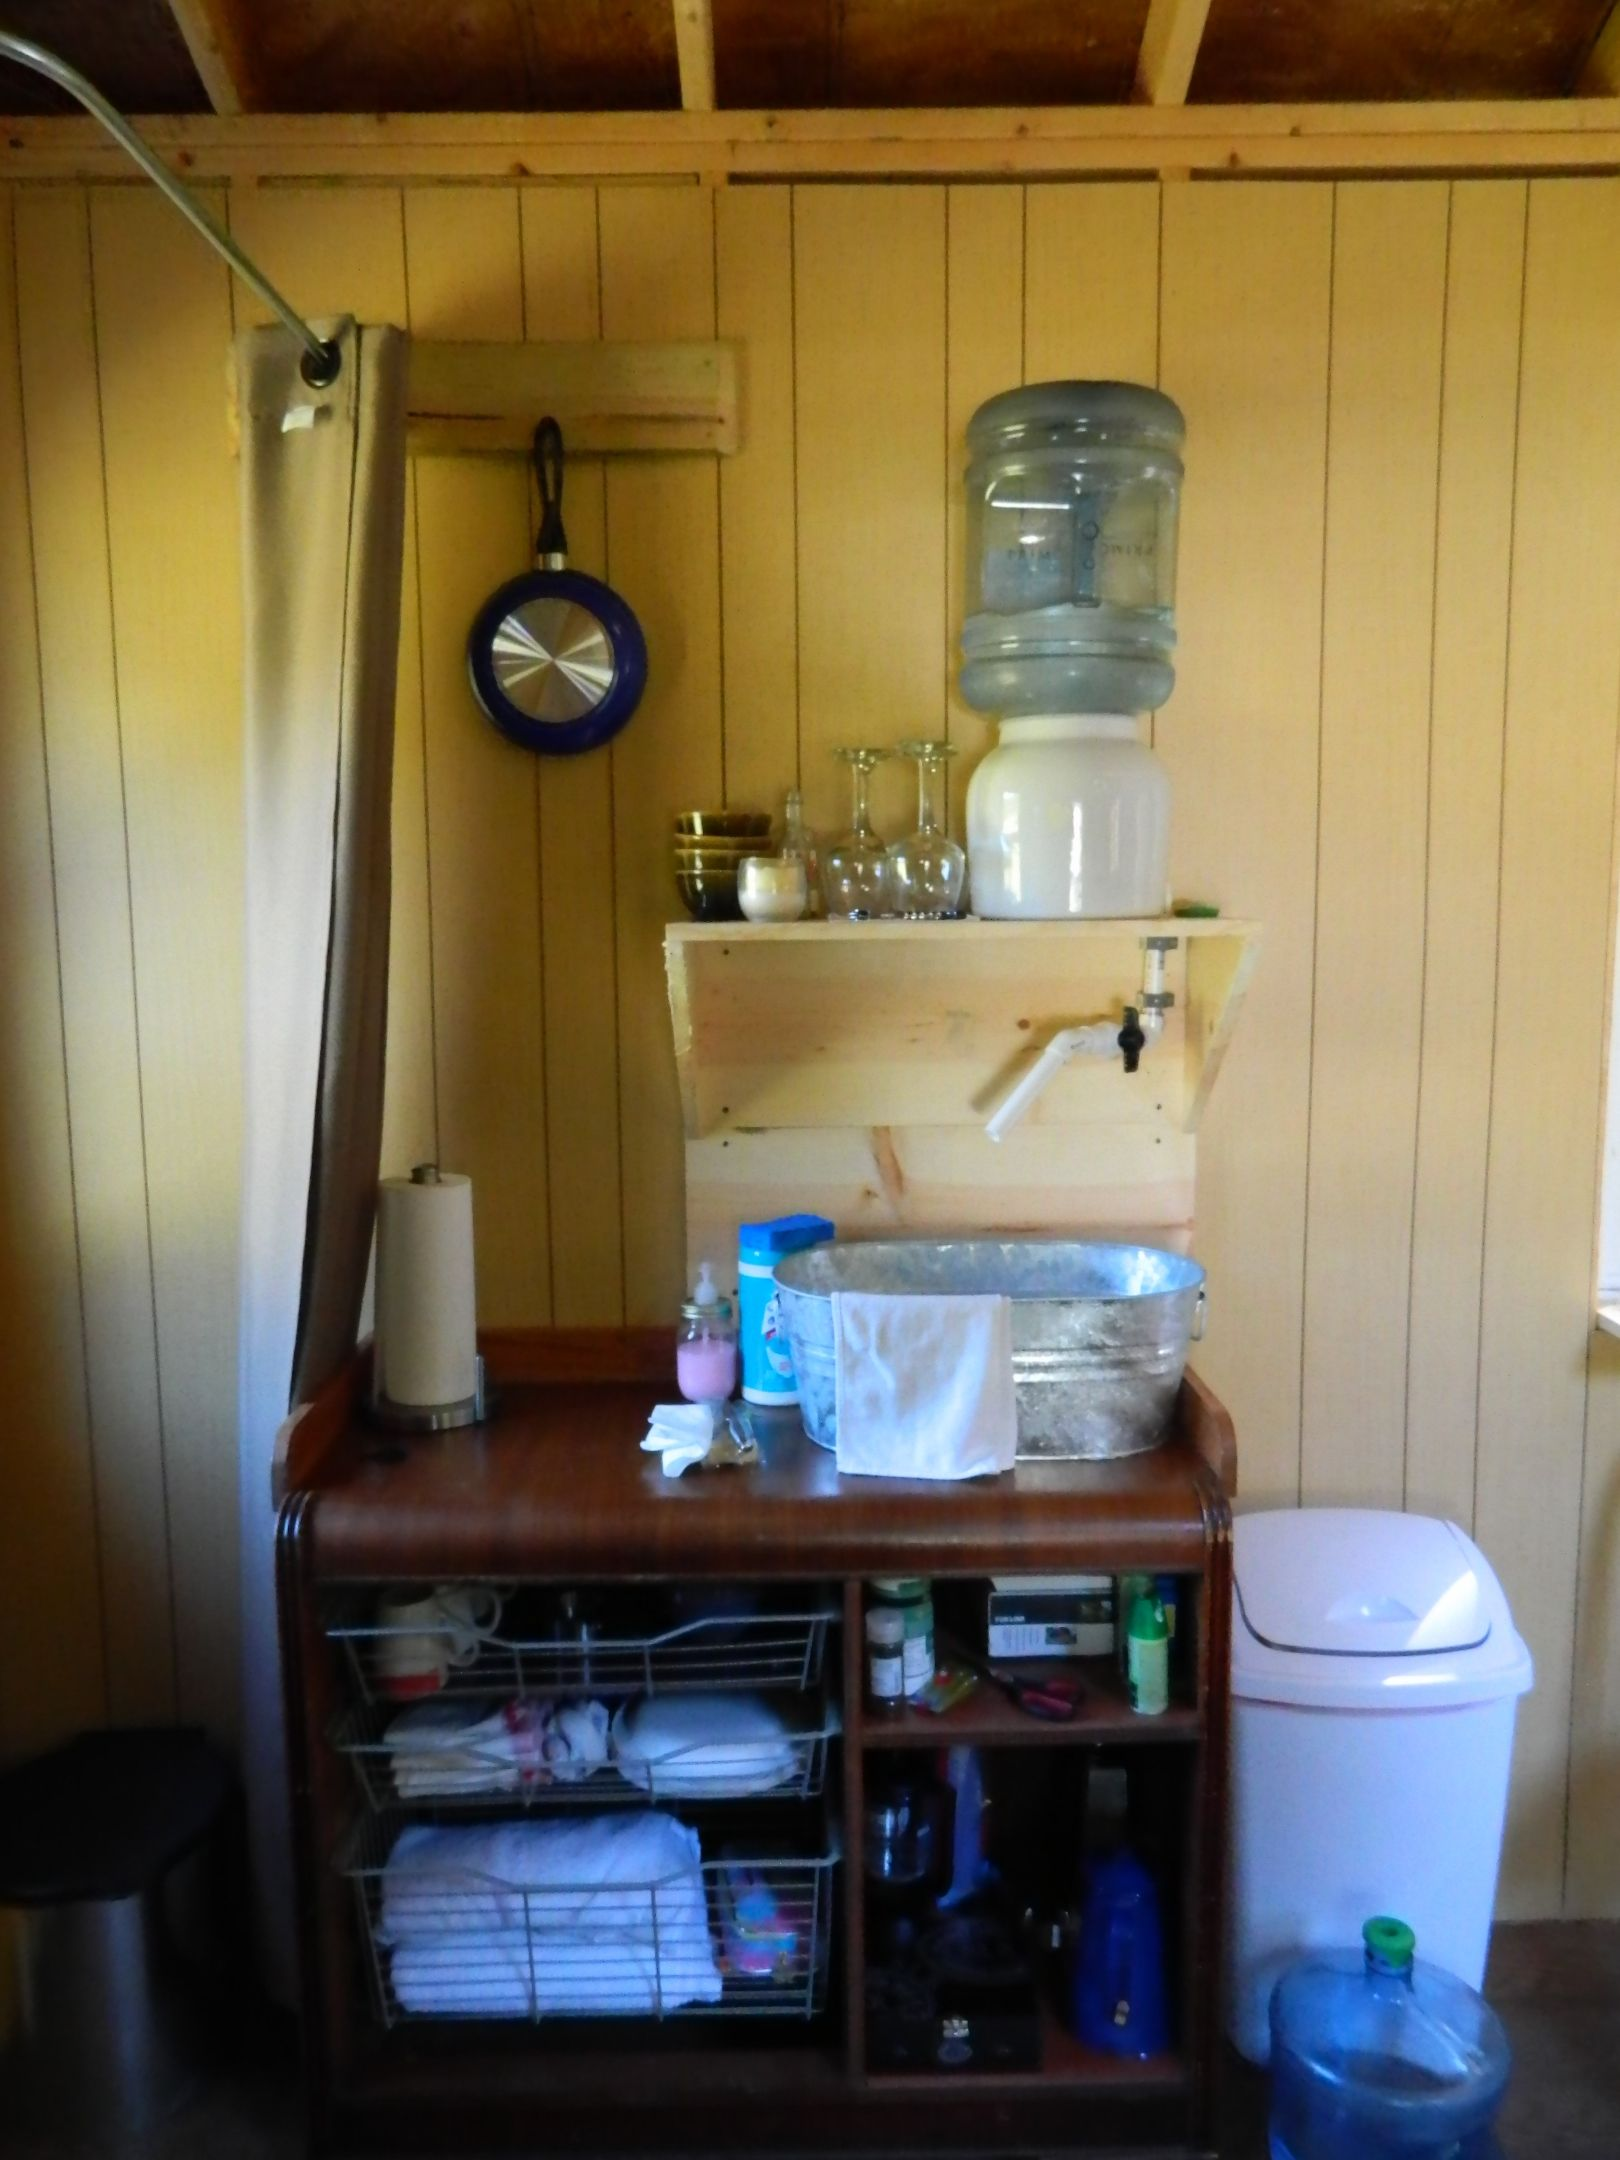 Sink - No running water in tiny house - We are very creative